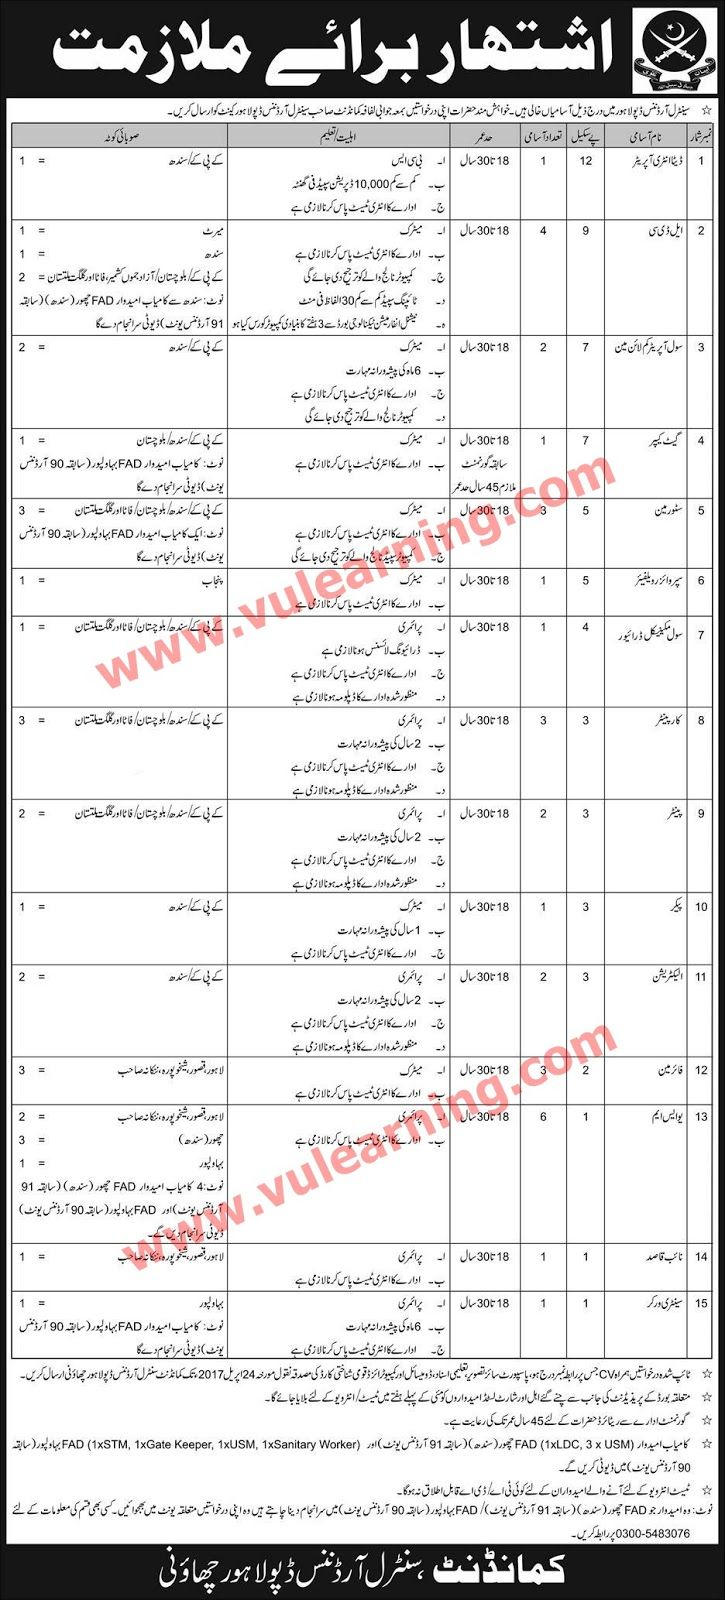 #  Title  Details  1  Jobs Location  Pakistan  2  Government / Private  Government  3  FPSC / PPSC / NTS / Others  Others  4  Published Date  09 Apr 2017 Sunday  5  Last Date to Apply  24 Apr 2017 Monday  6  Newspaper Name  Express  Pak Army Civilian Jobs April 2017 in Central Ordinance Depot Lahore Cantt Latest  Advertised Vacancies / Positions:-  Data Entry Operator  LDC (Lower Division Clerk)  Civil Operator Cum Line Man  Gate Keeper  Storman  Supervisor Welfare  Civil Mechanical Driver…